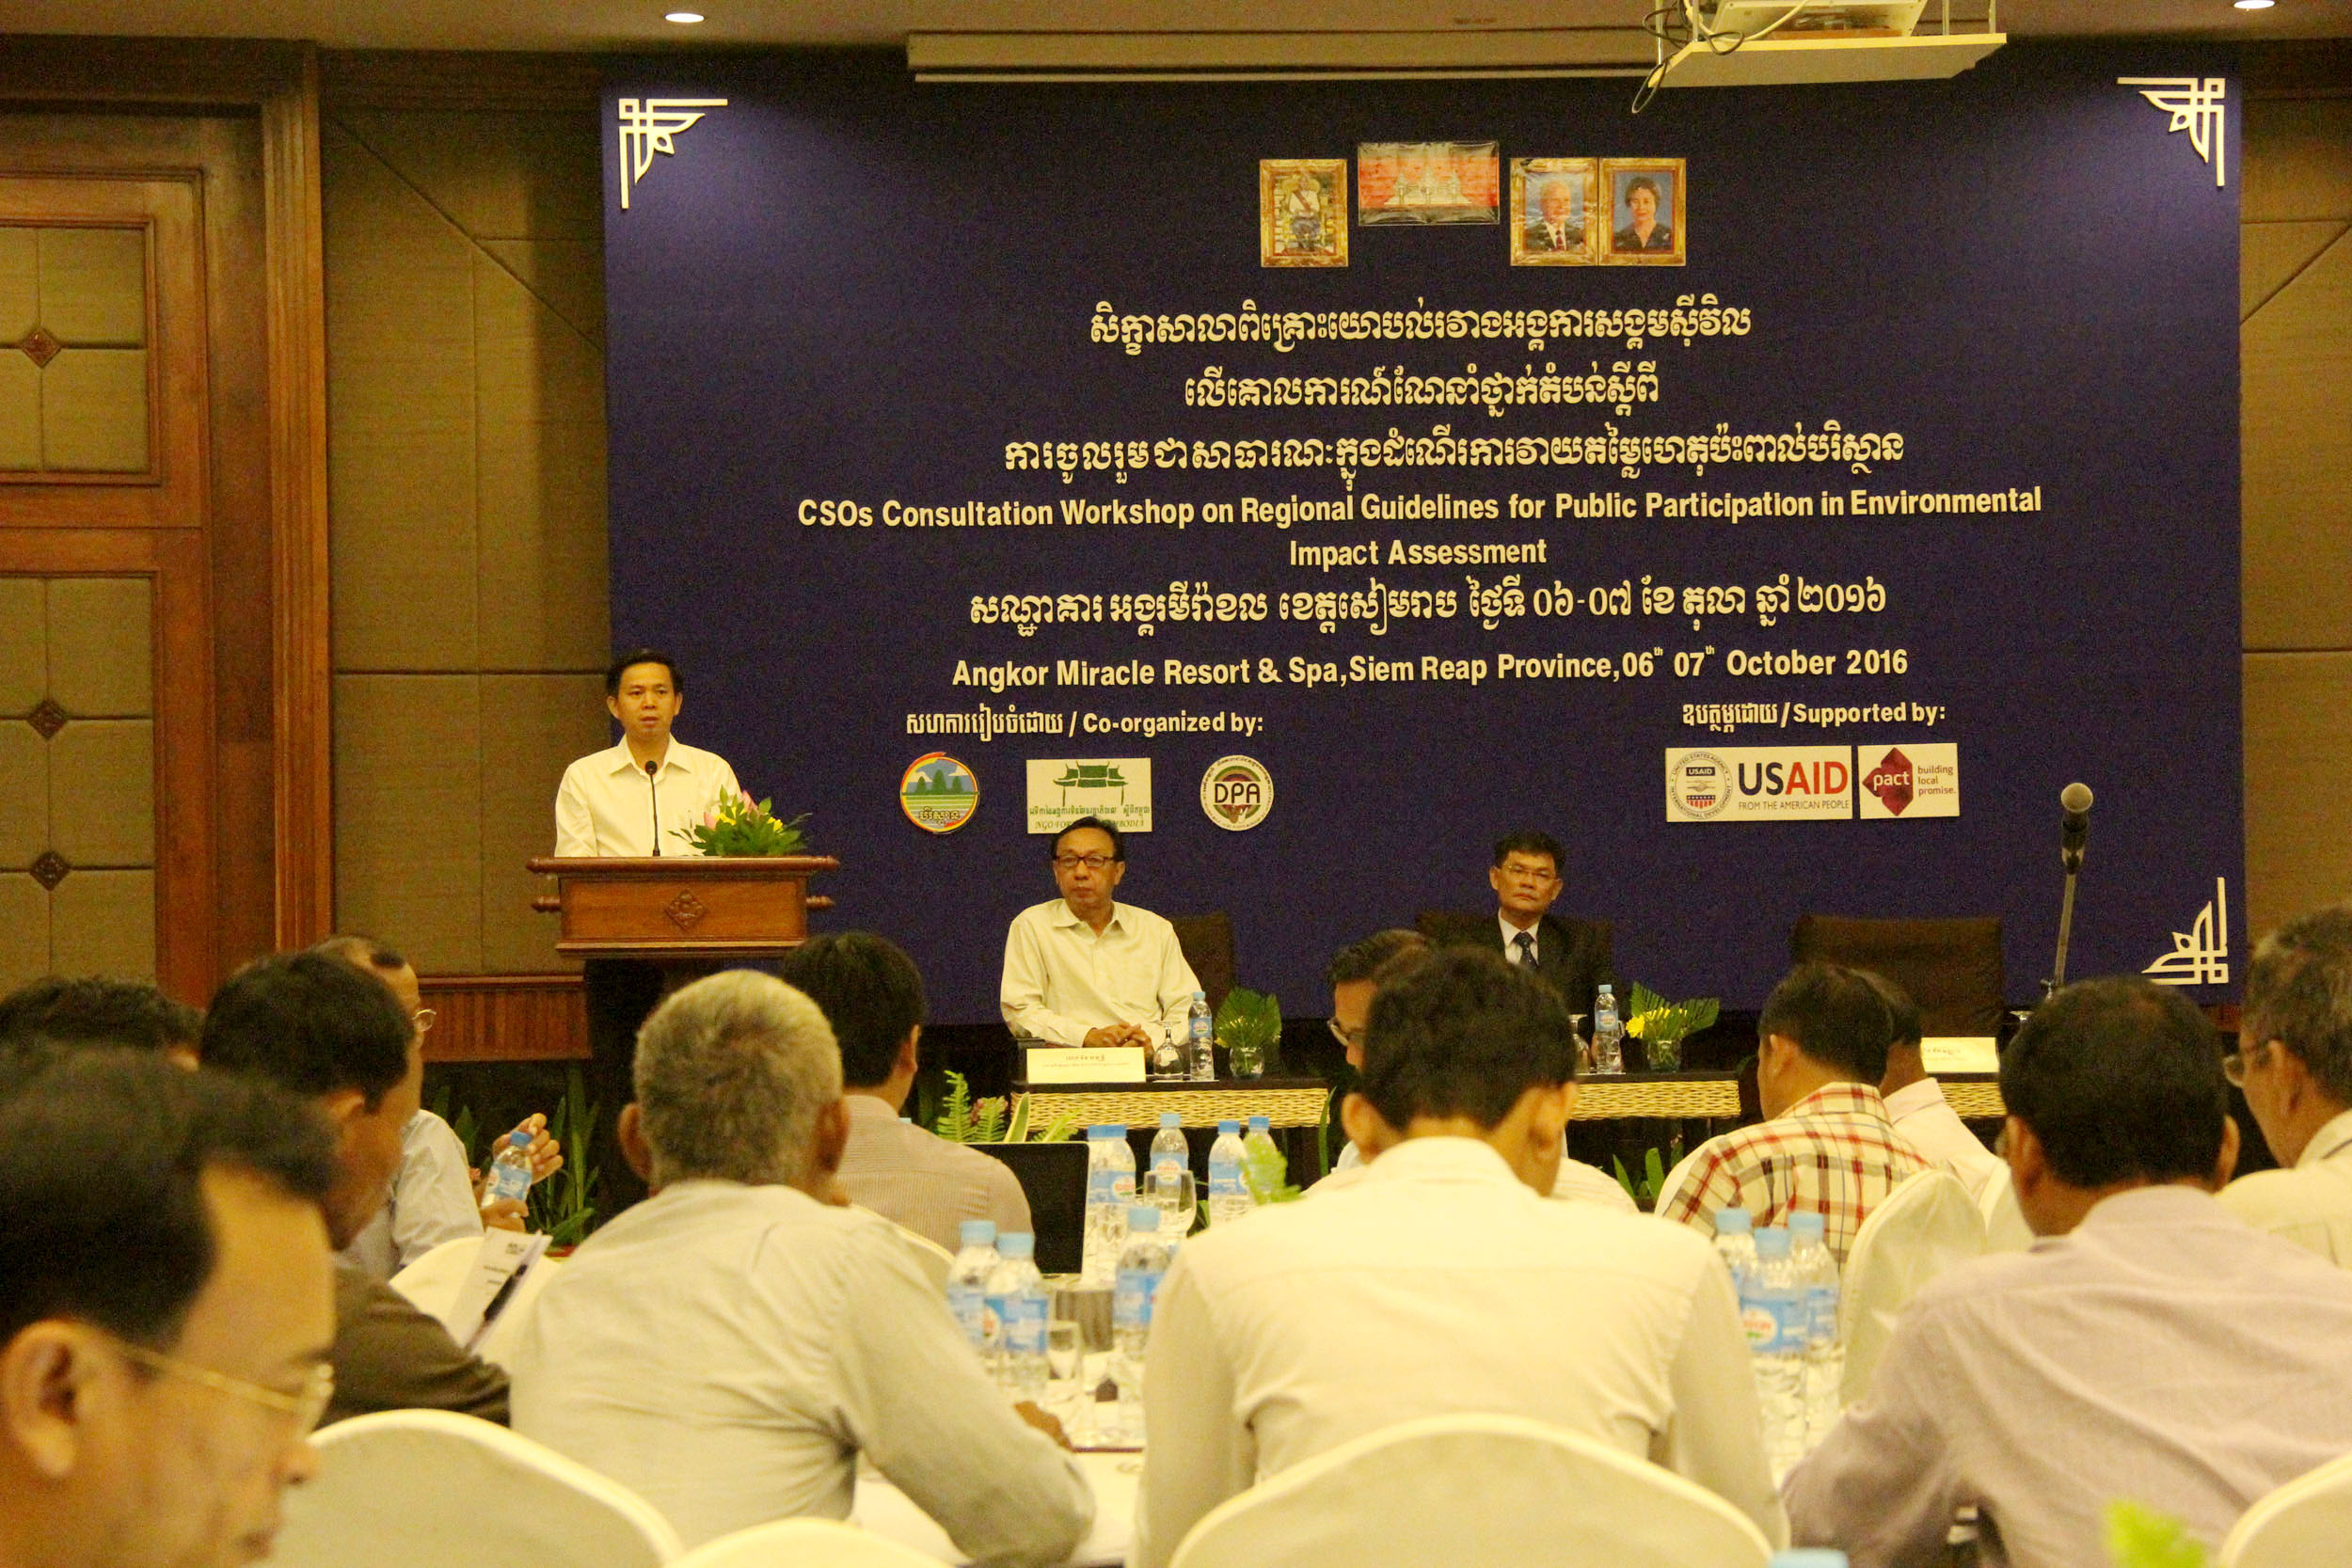 Regional Guidelines for Public Participation in Environmental Impact Assessment 001